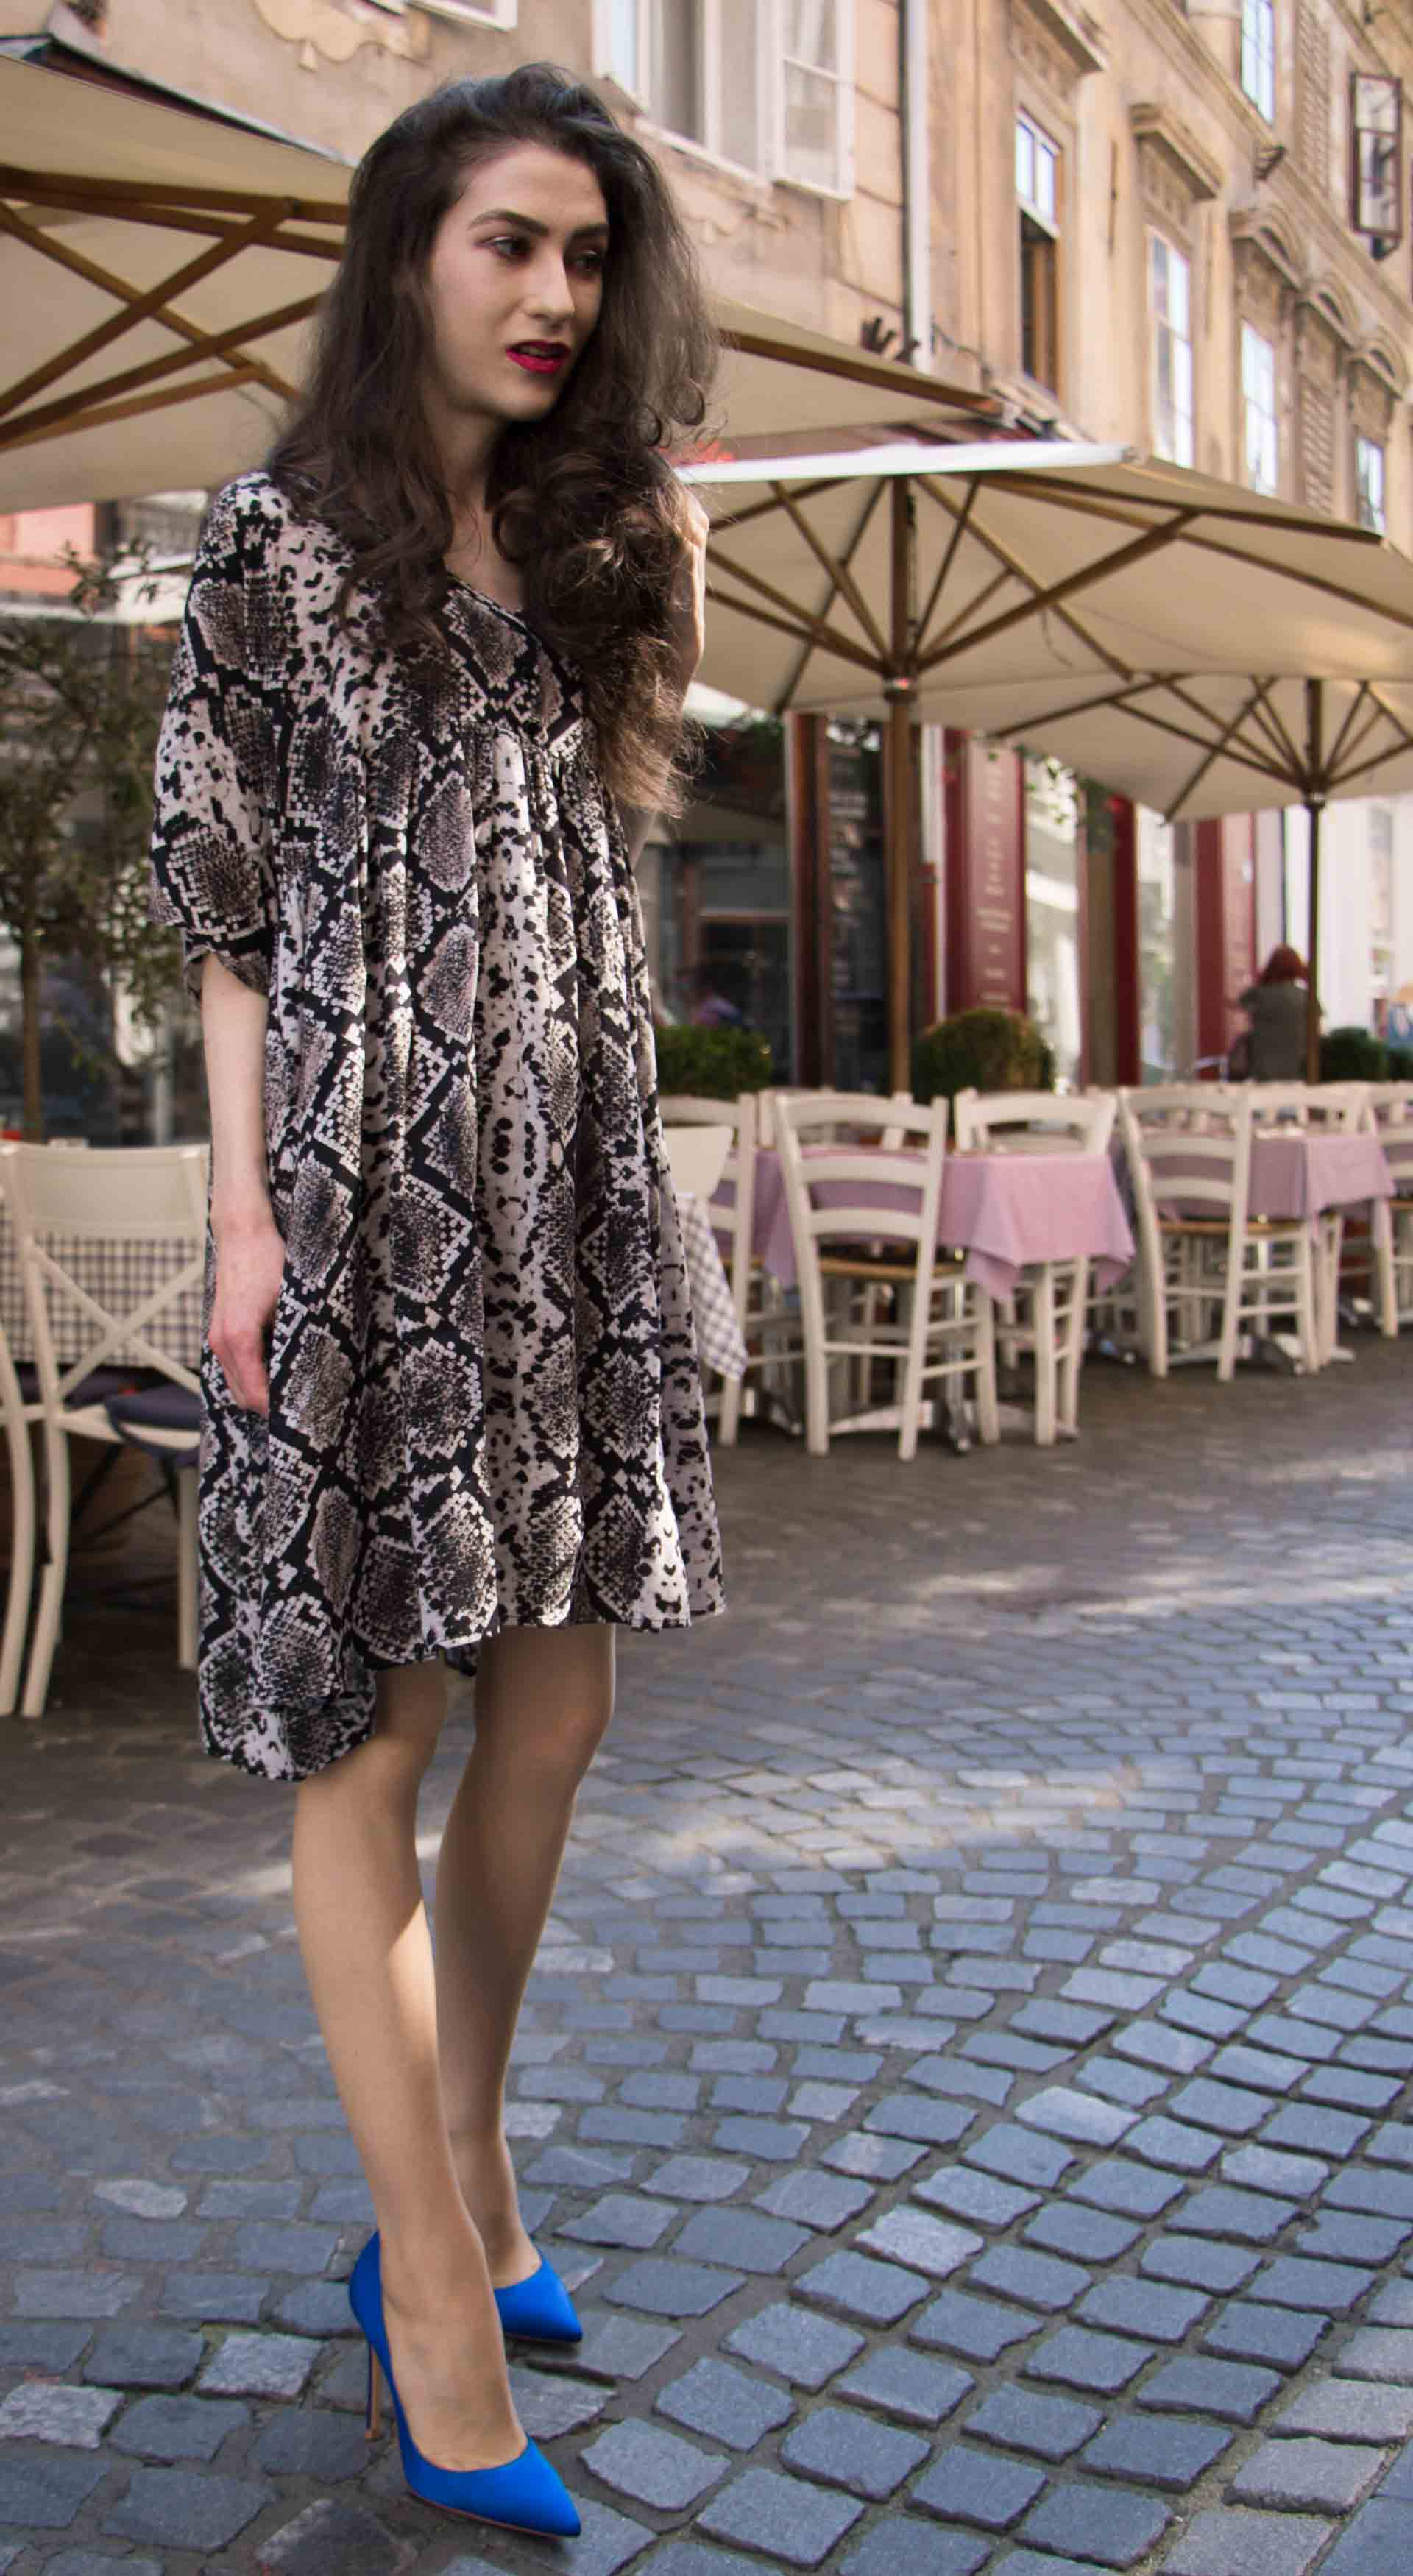 Beautiful Slovenian Fashion Blogger Veronika Lipar of Brunette from Wall dressed in flowing short snake print dress from Zara, blue Gianvito Rossi satin pumps, standing by the restaurant tables on the street